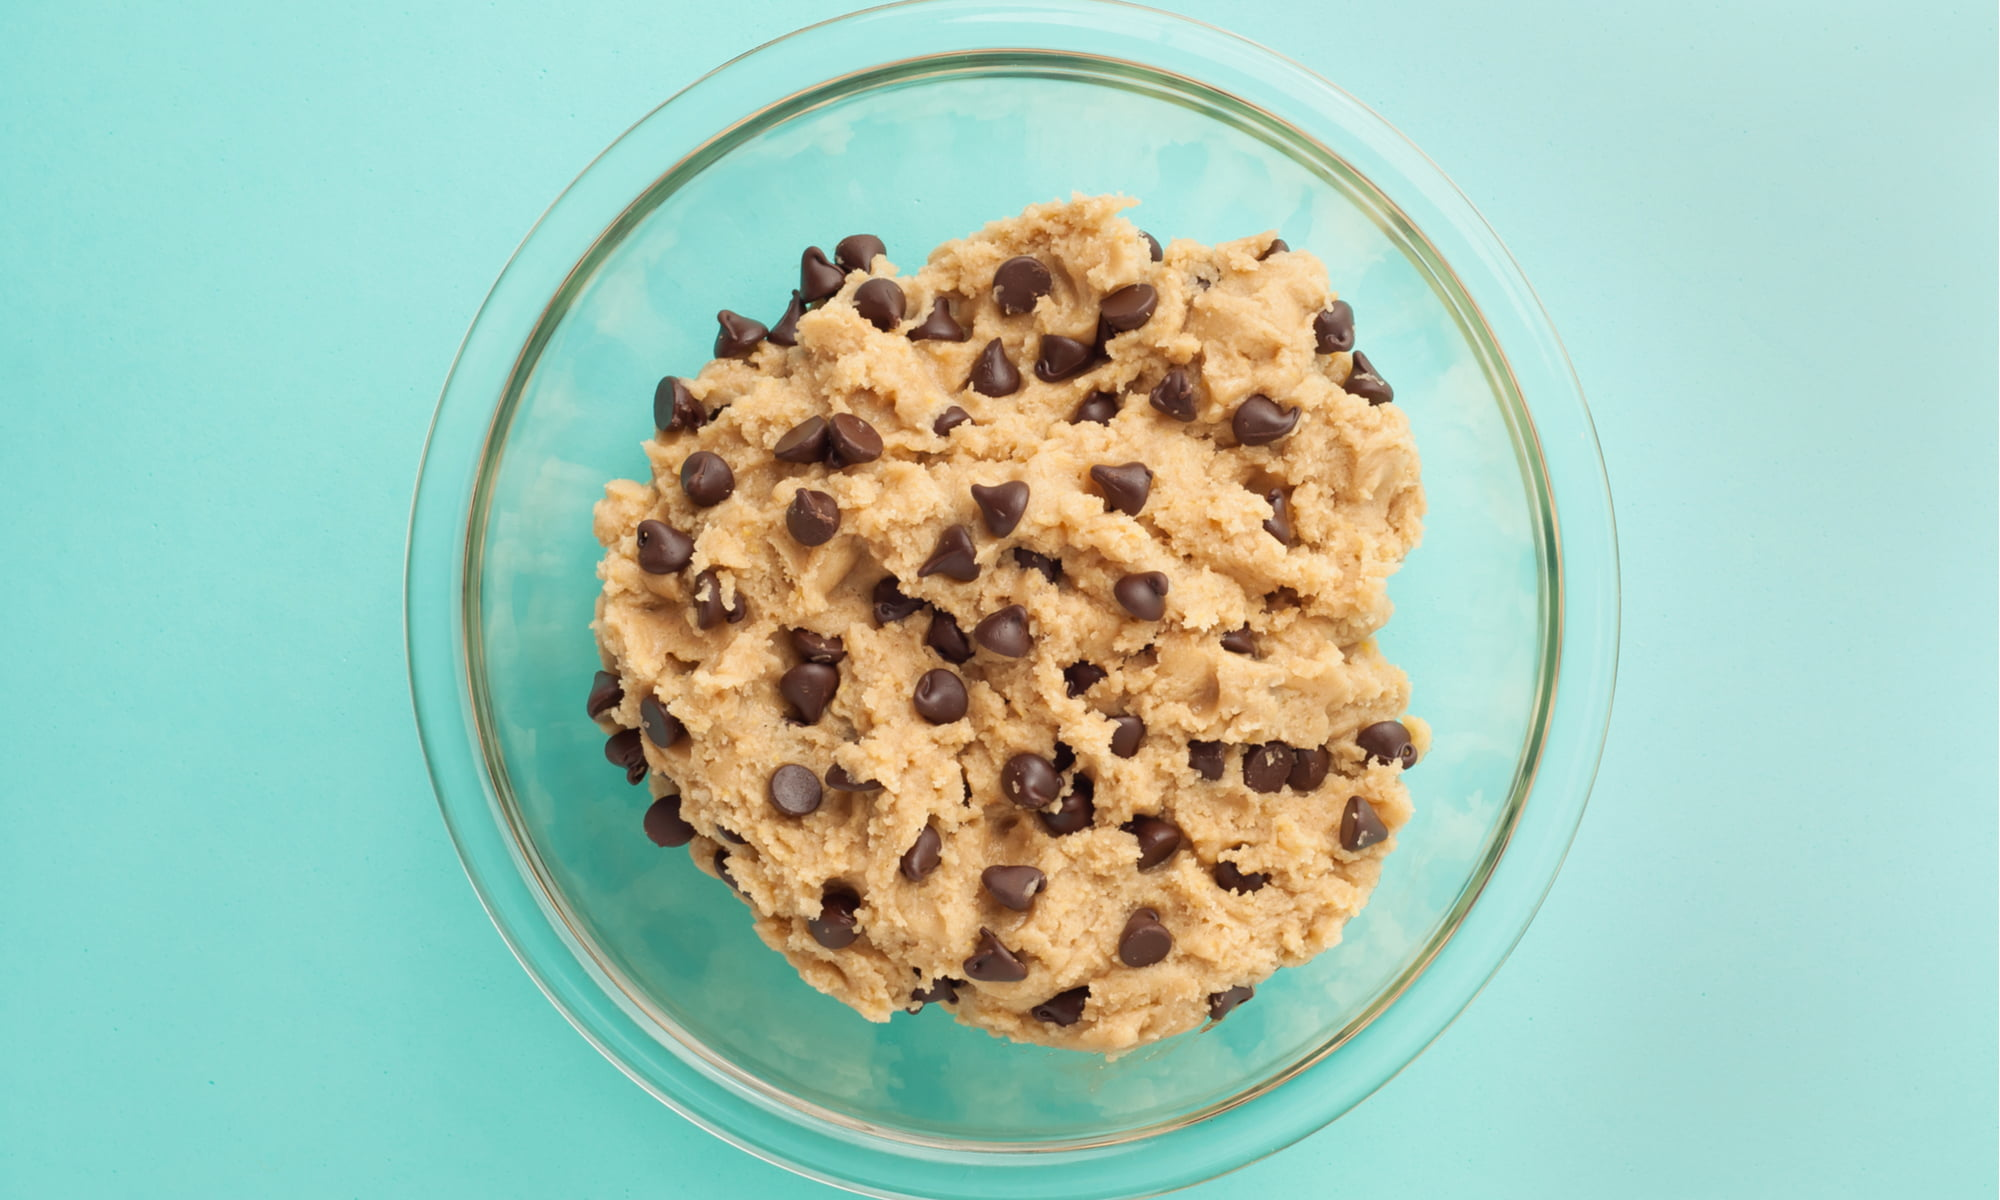 The Healthy Treat You'll Want To Indulge In: Chickpea Cookie Dough